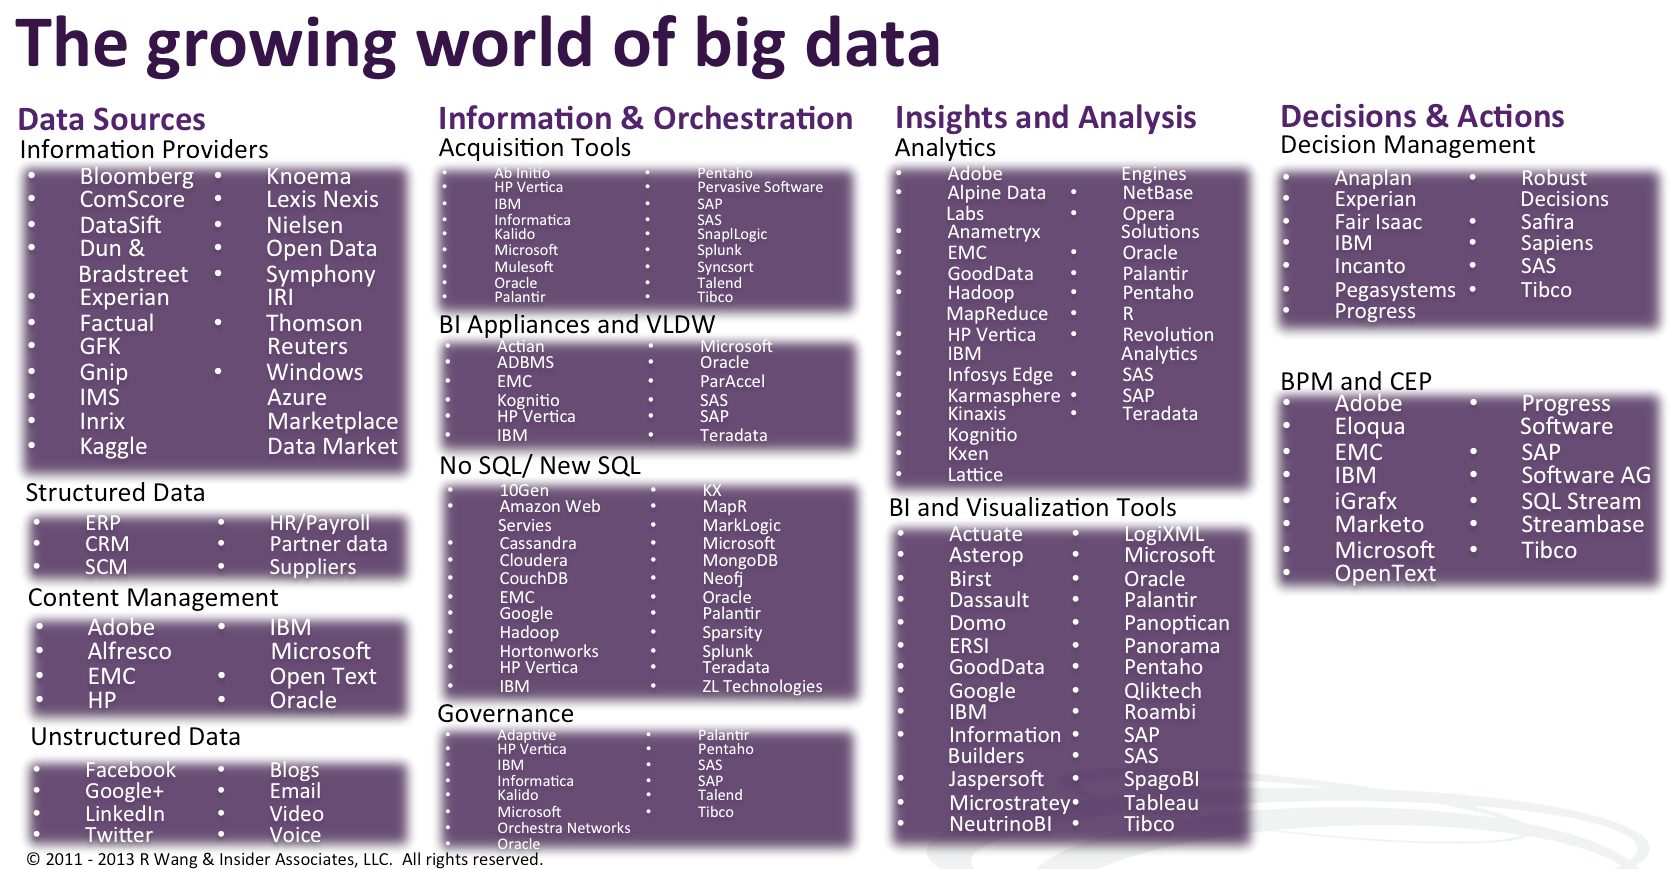 Looking At Big Data In 4 Sub Categories Figure 2 Data Sources Information Providers Structured Data Content Management And Big Data Marketing Data Data